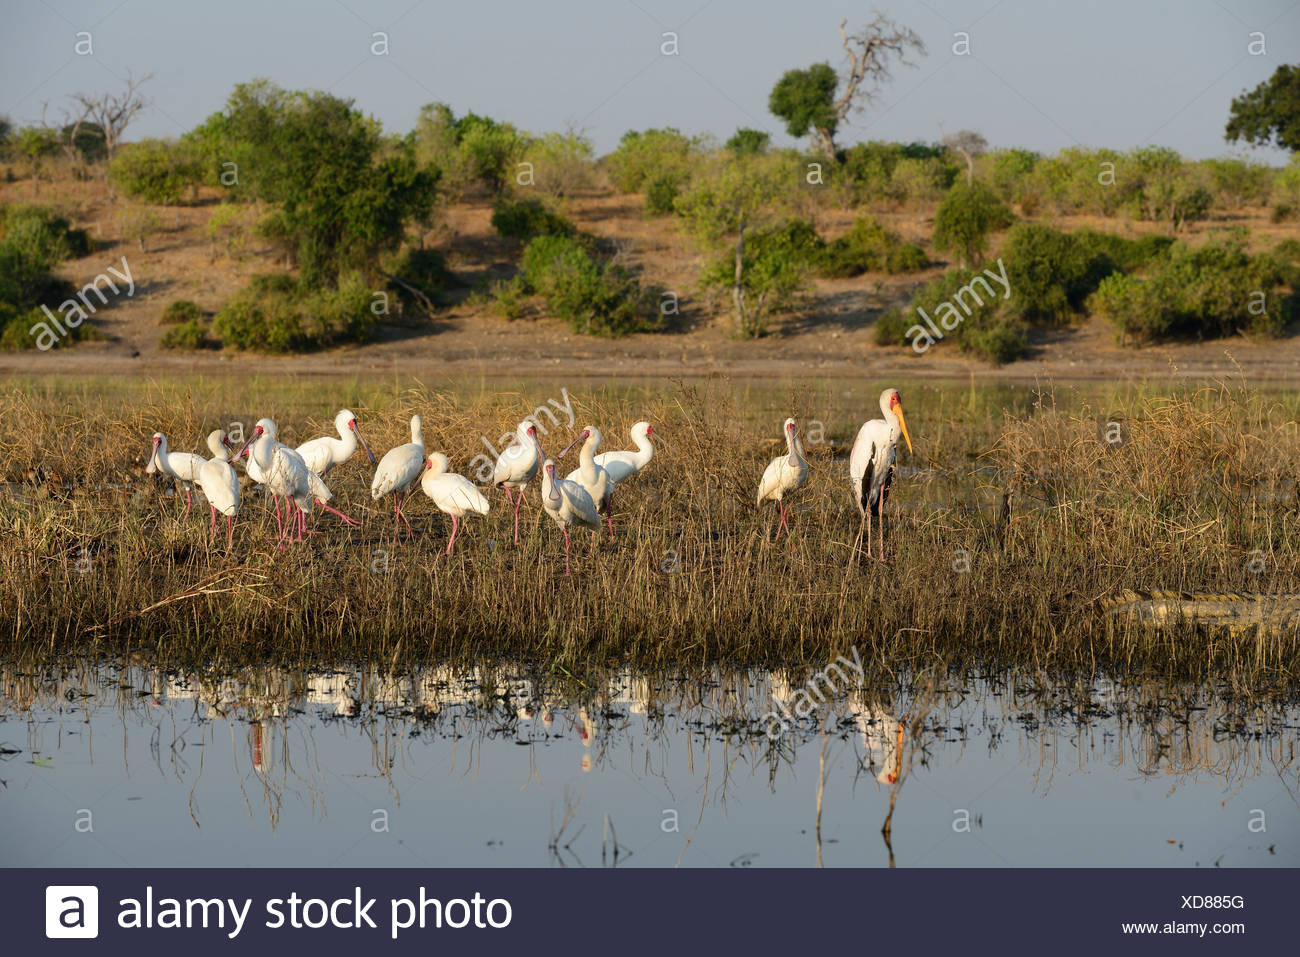 Africa, Botswana, Chobe, National Park, Yellow-billed Stork, wildlife, bird, Mycteria ibis, stork, Stock Photo